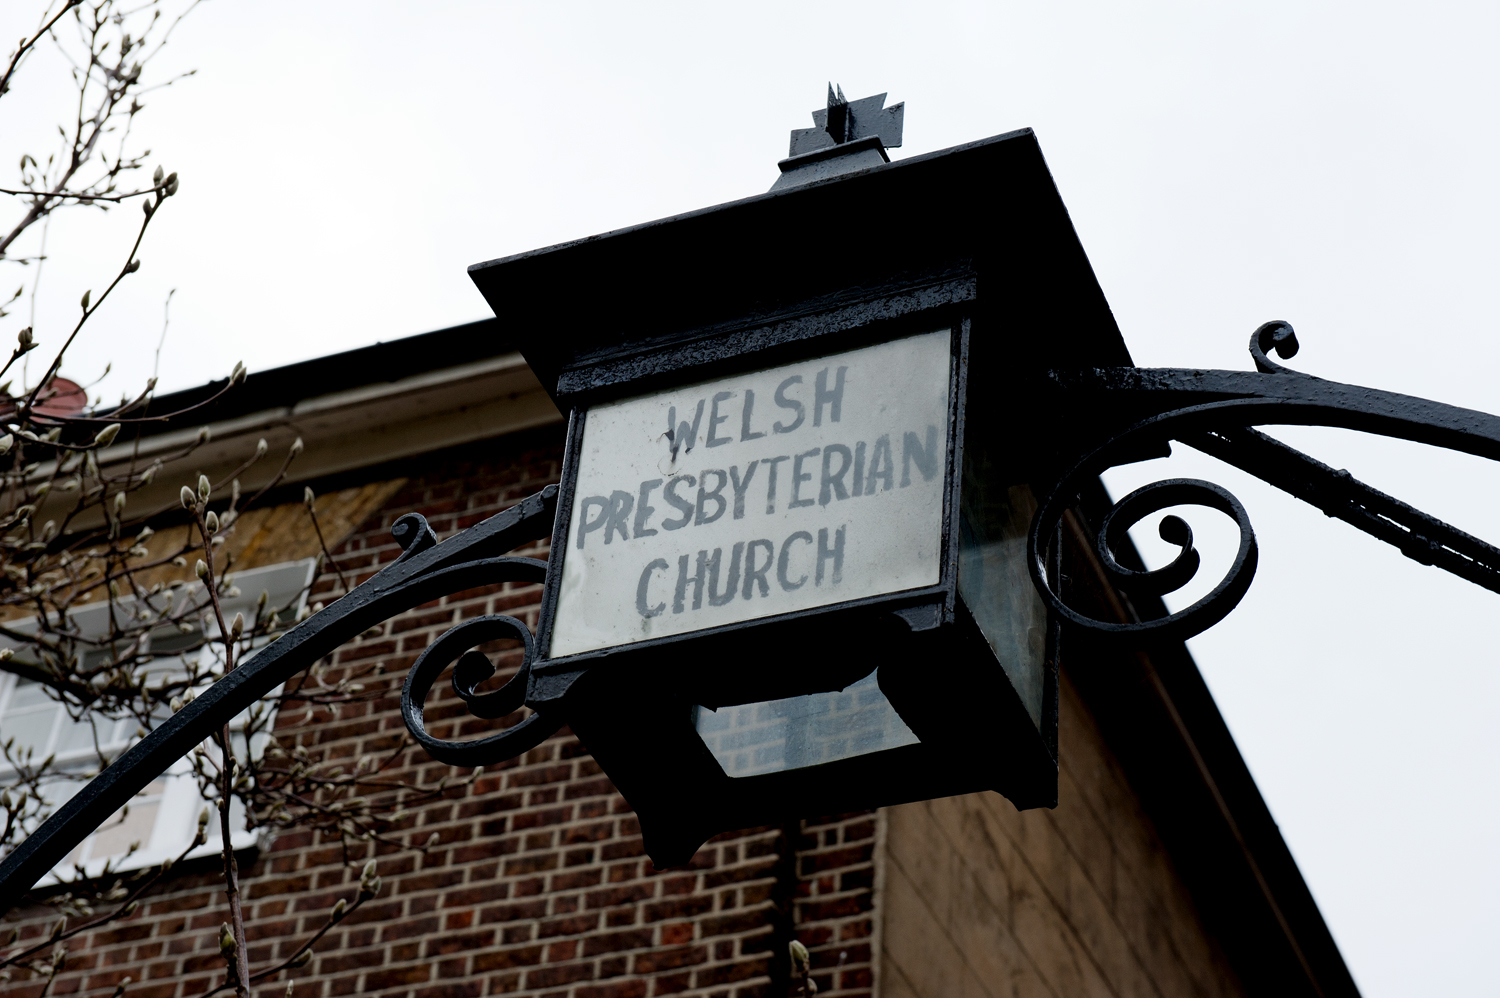 welsh presbyterian church [ealing, london, england, 2011]